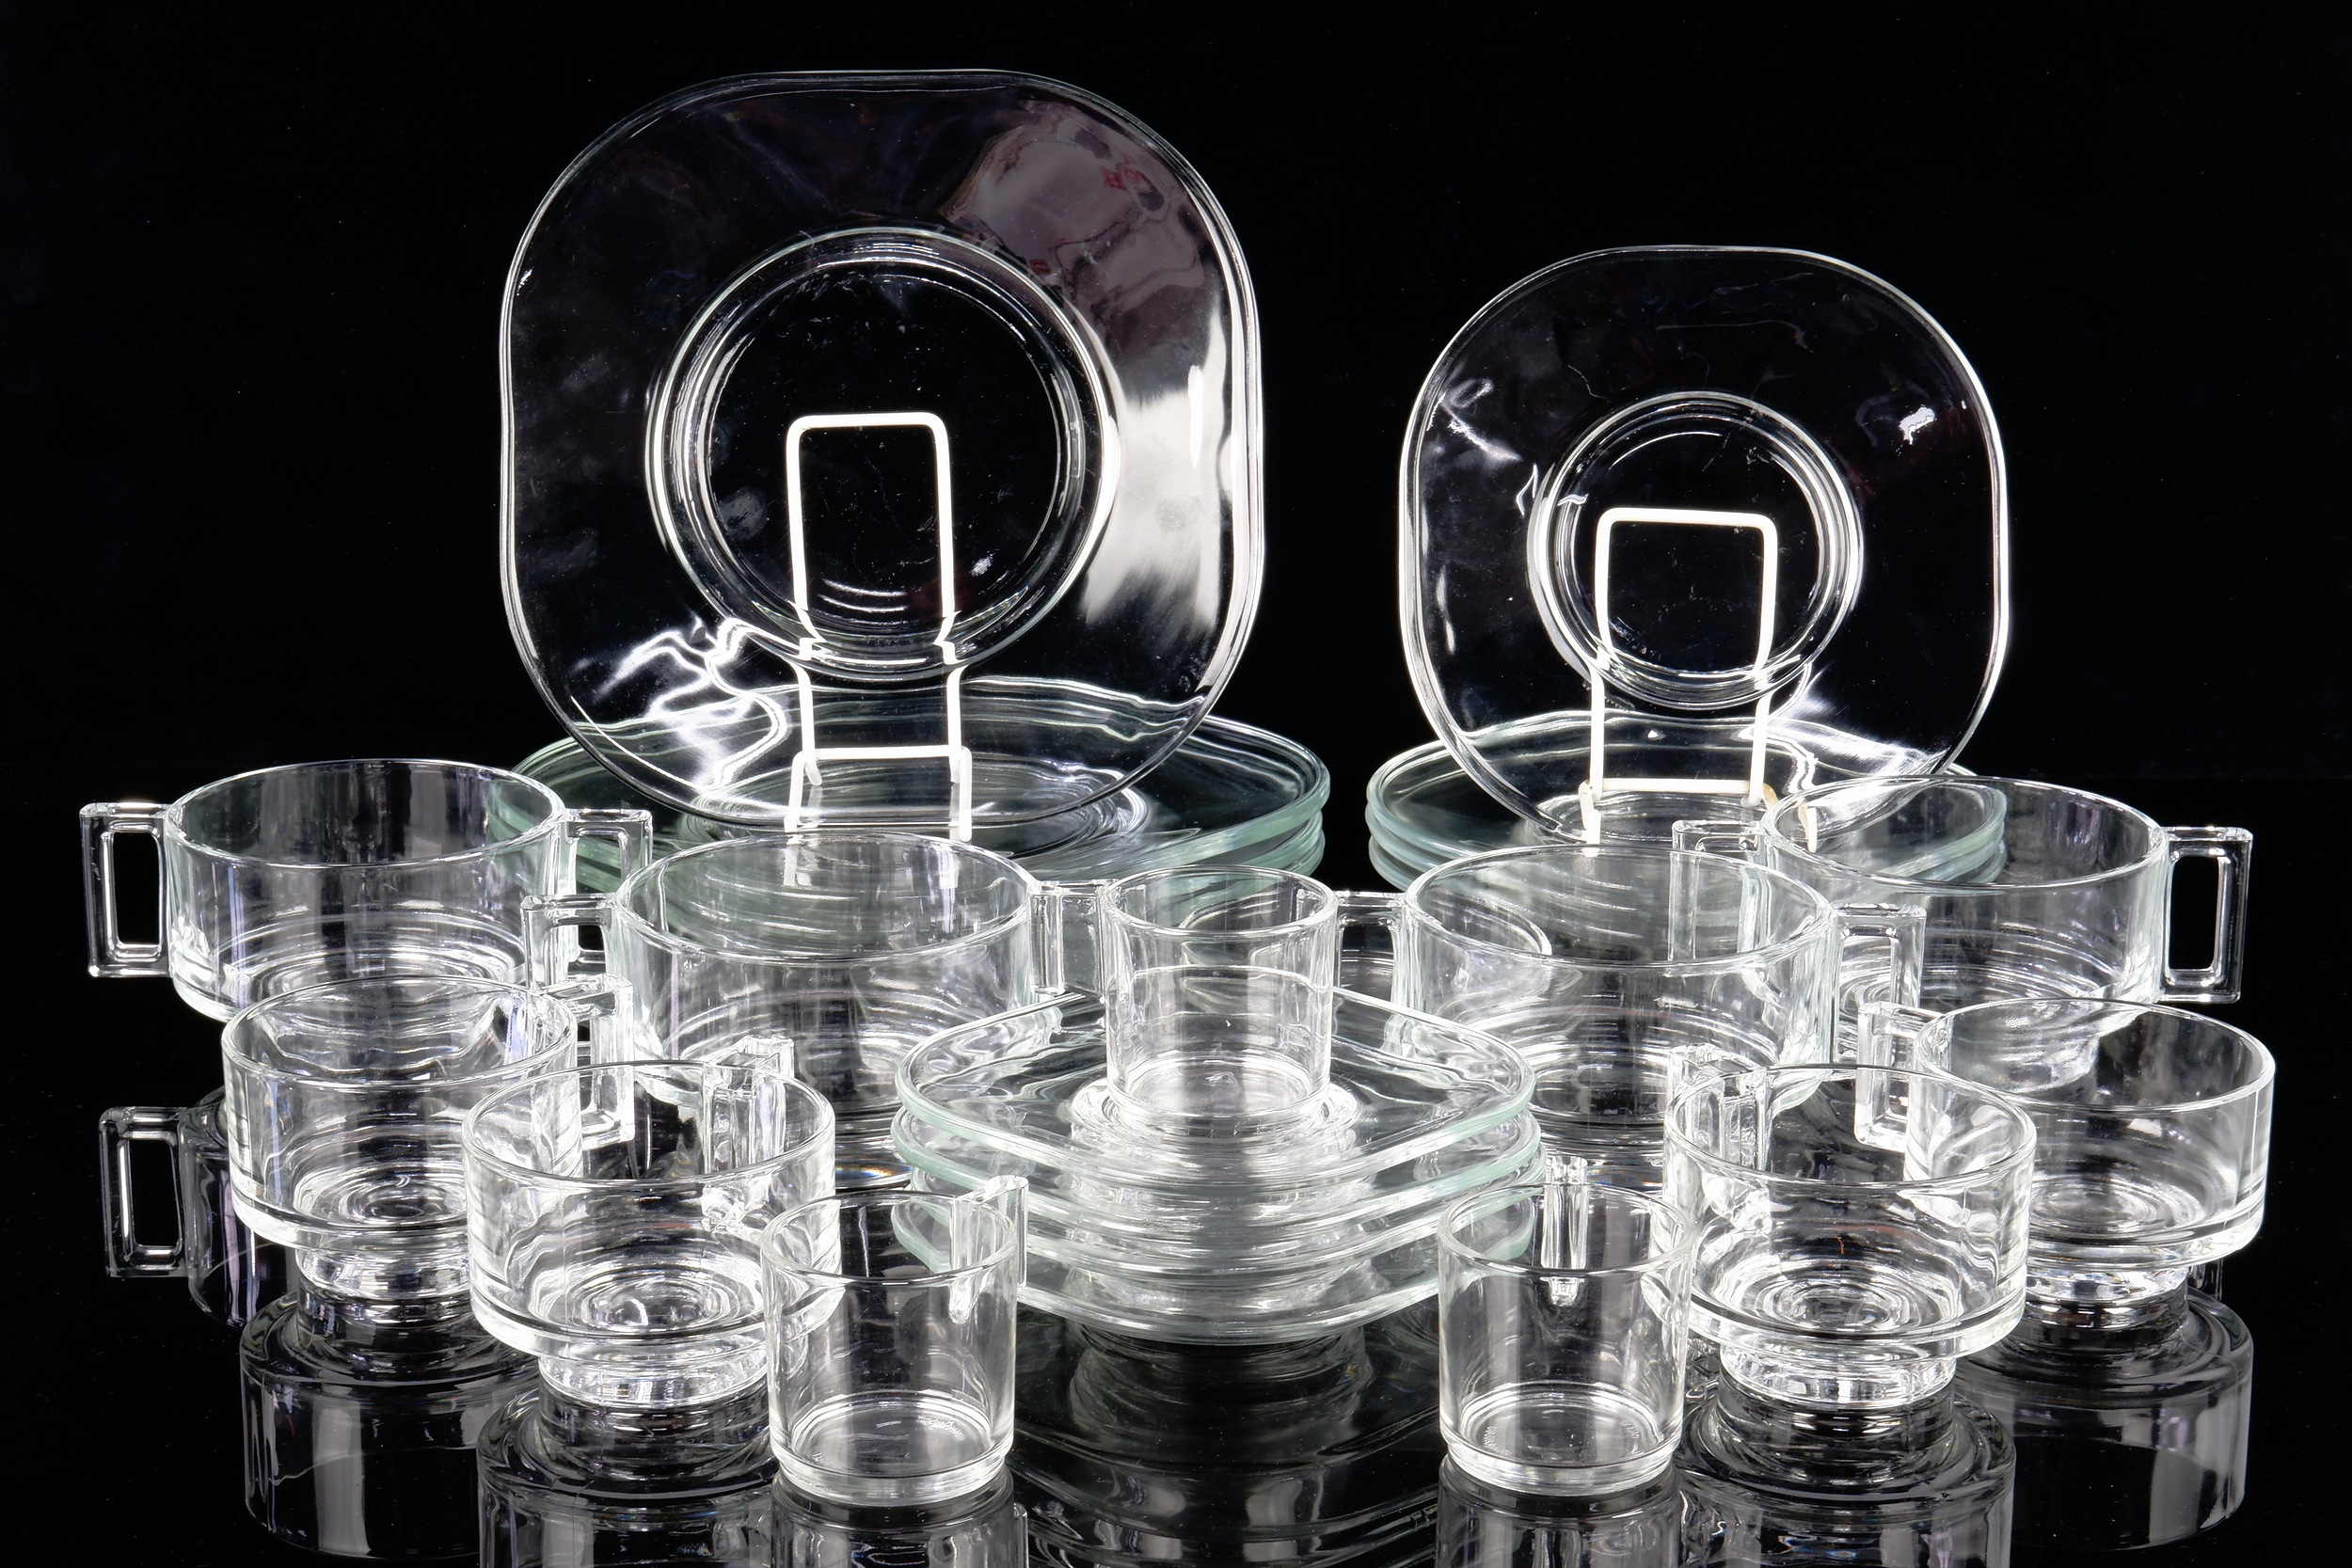 'Italian Borgonovo Glass Dinner Service Designed by Joe Colombo'